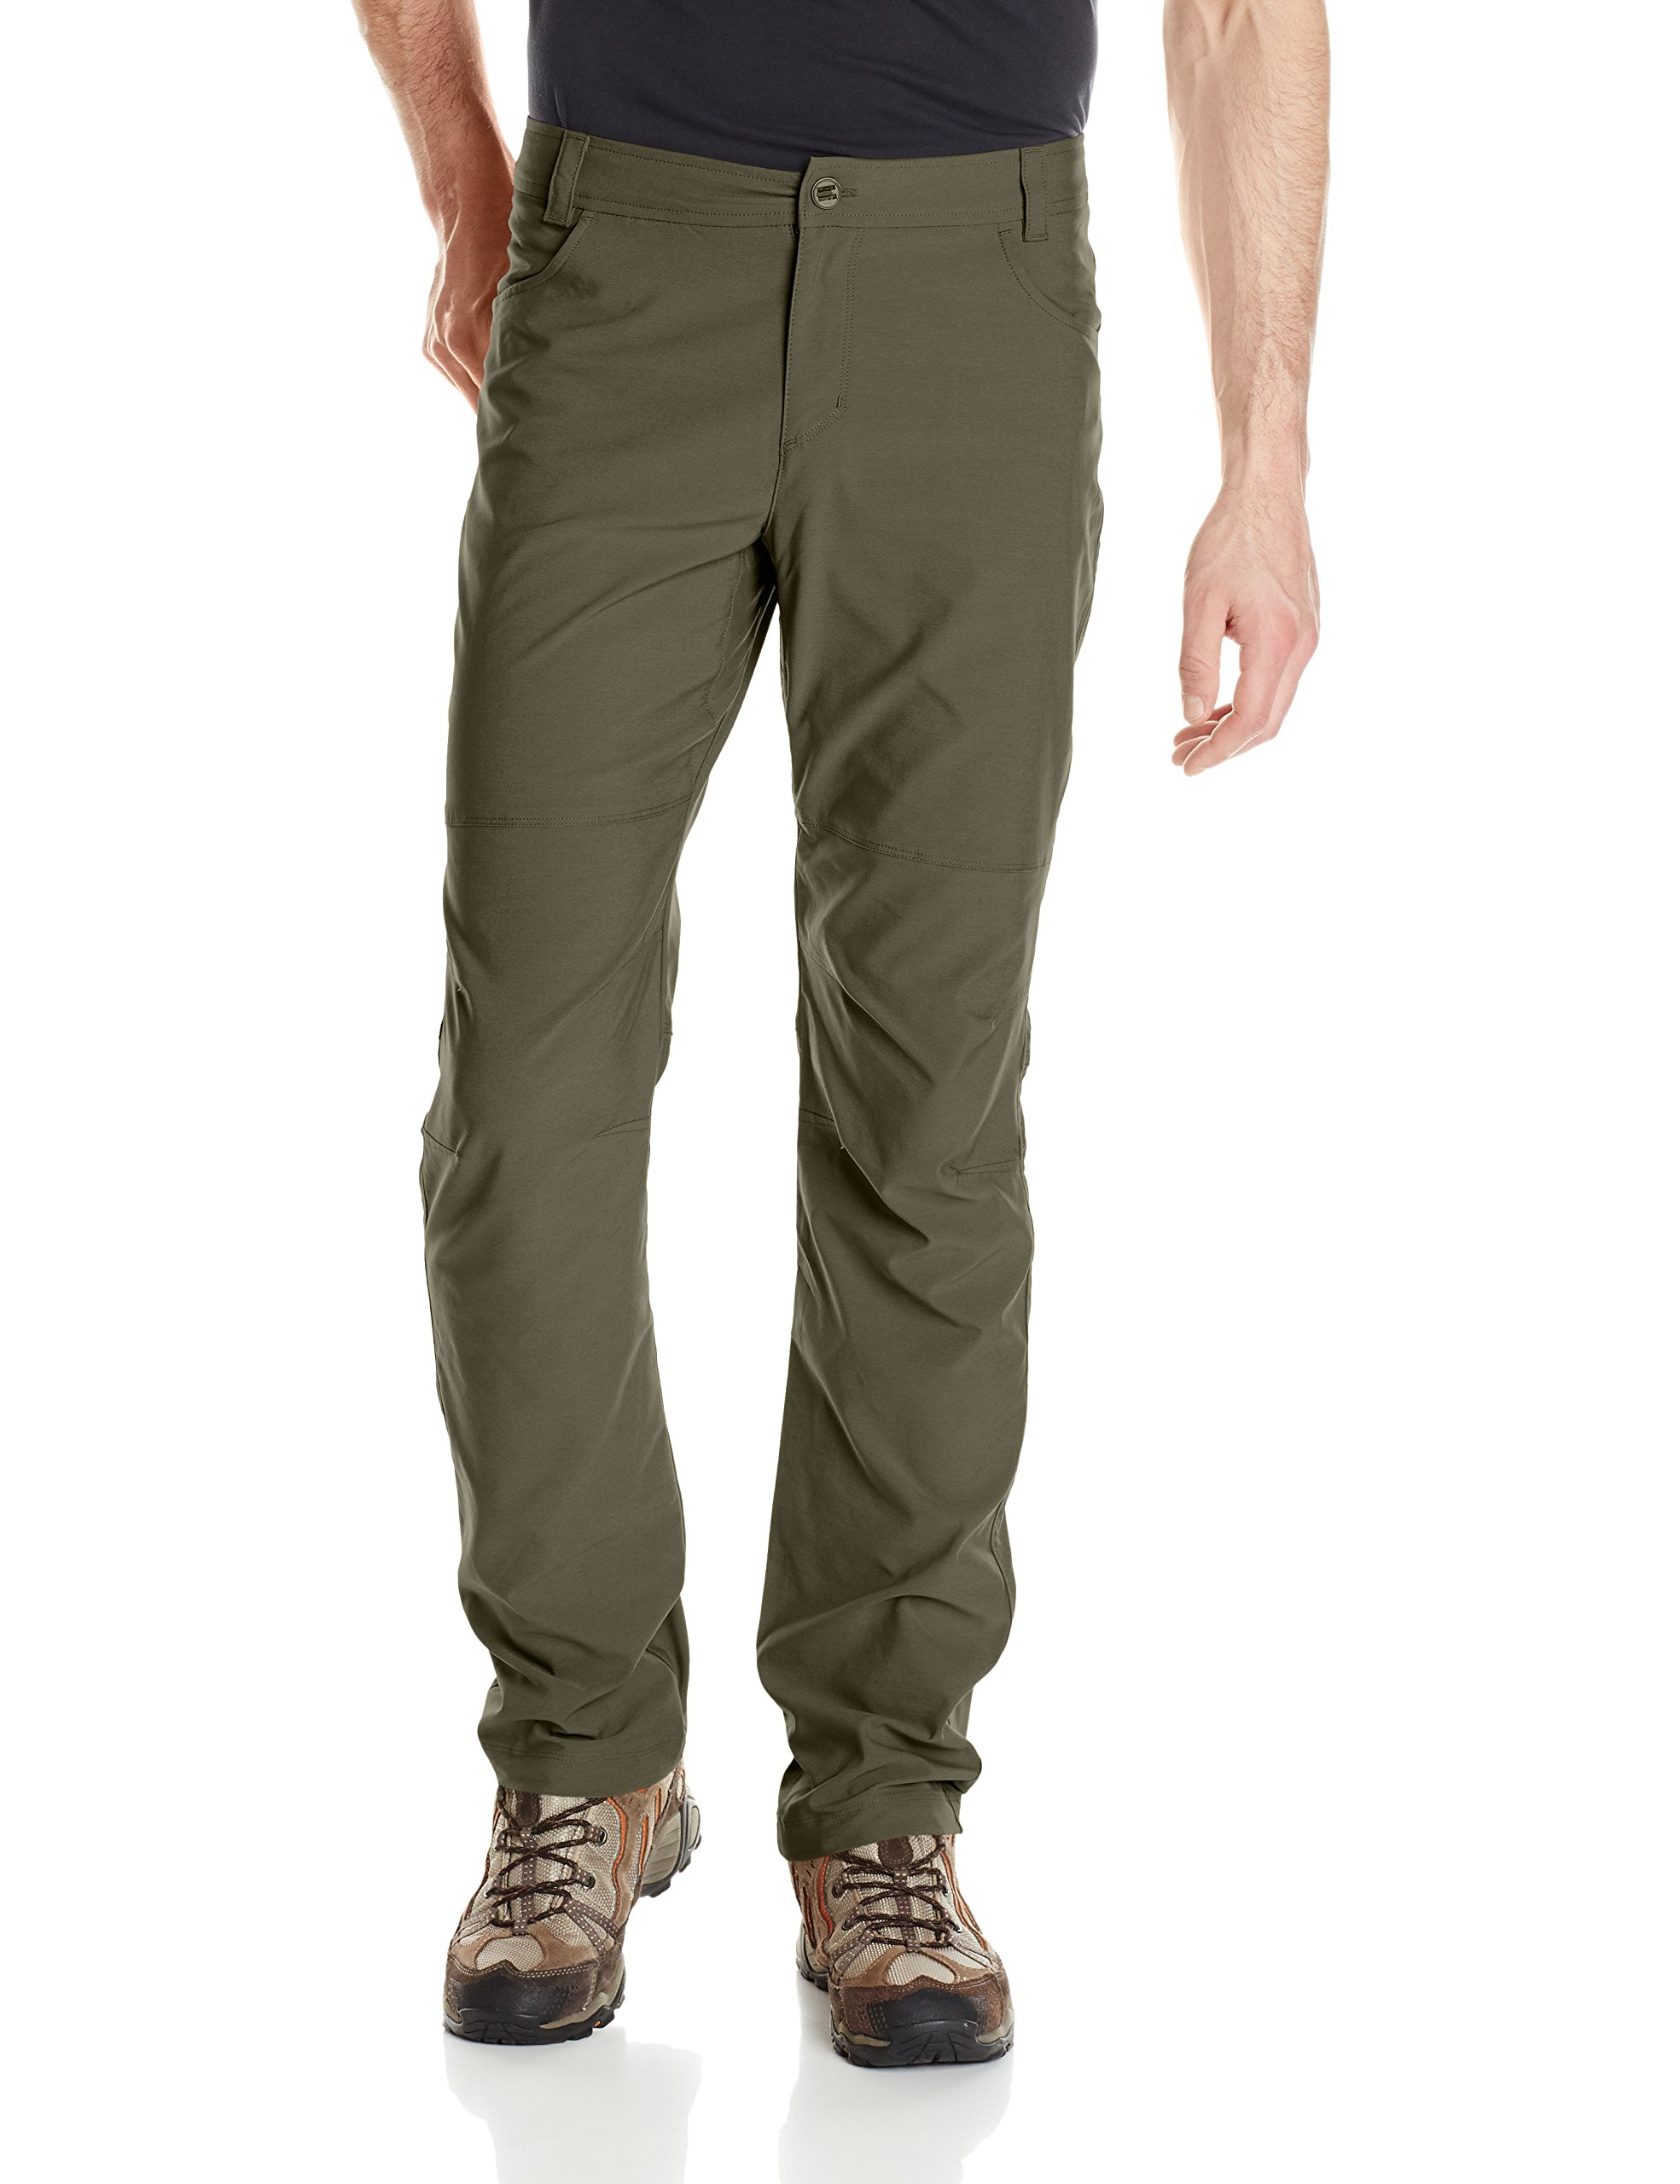 Columbia Men's Pilsner Peak Pants, 36'' x 32'', Gravel